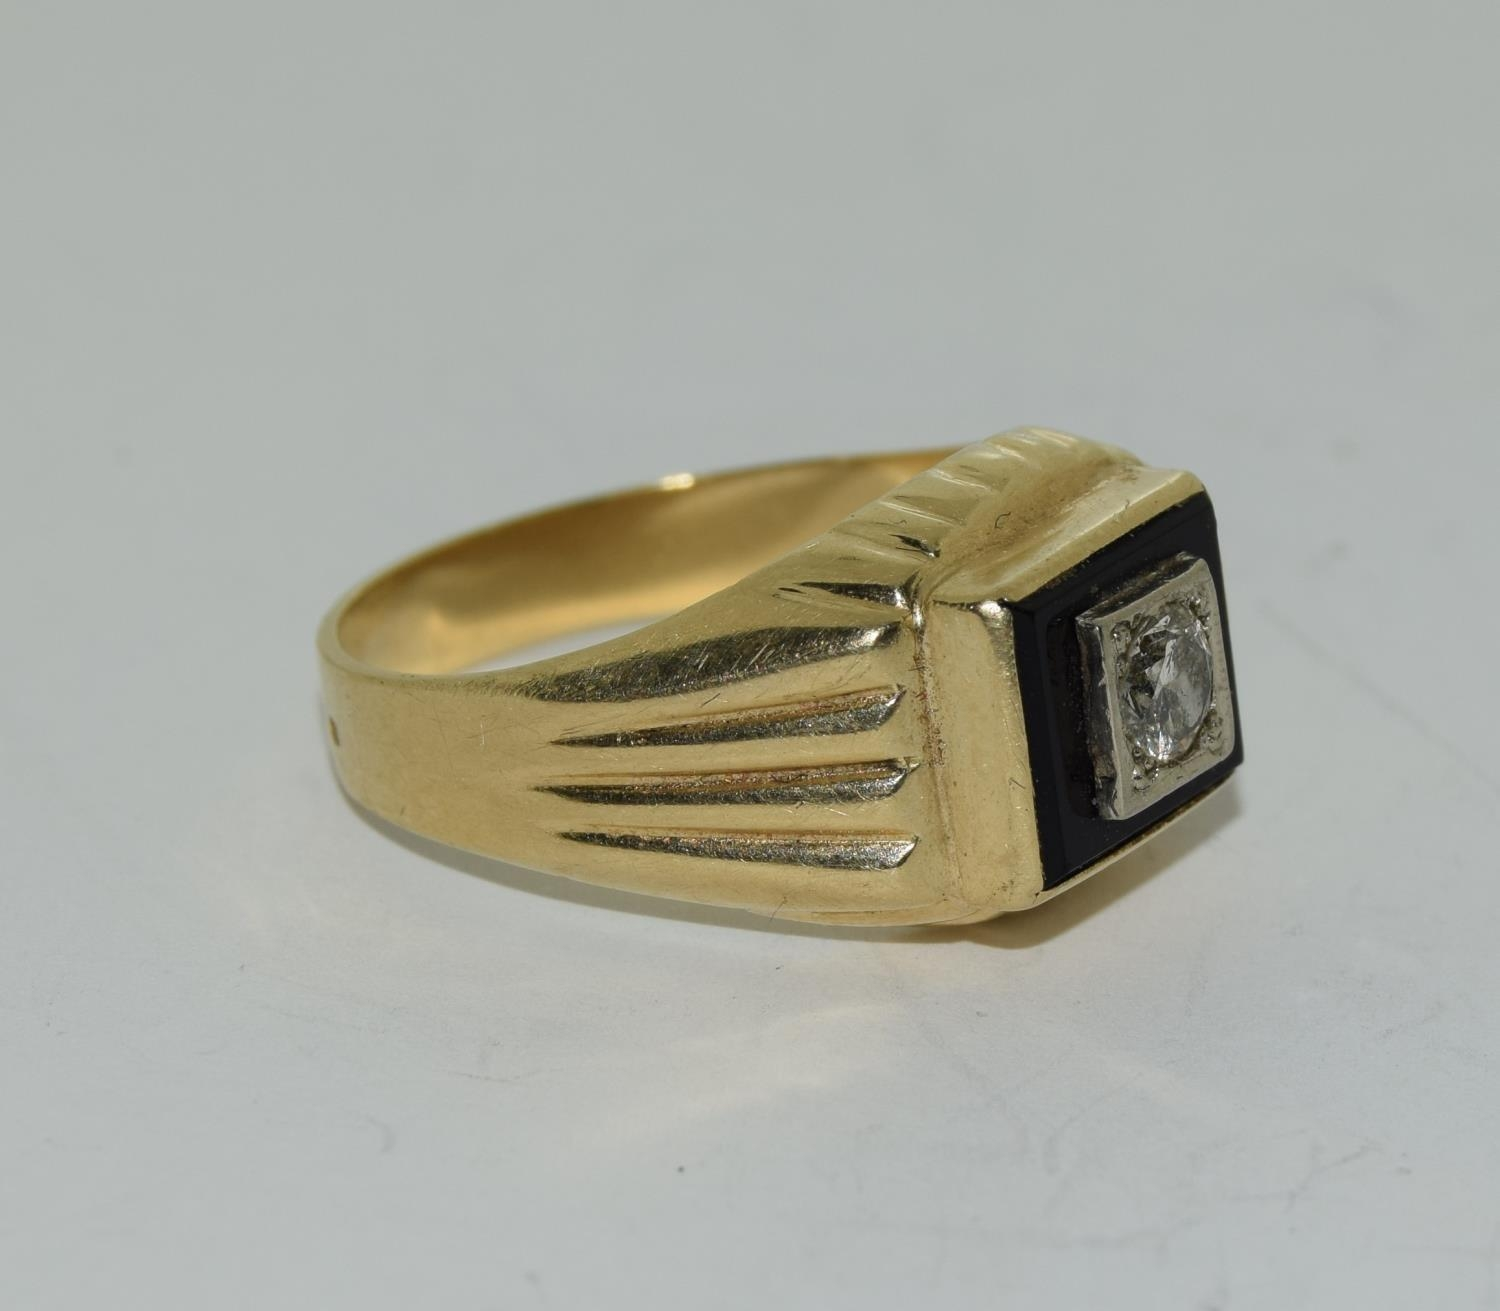 14ct gold gents onyx set with diamond approx 0.33ct signet ring size S - Image 5 of 6